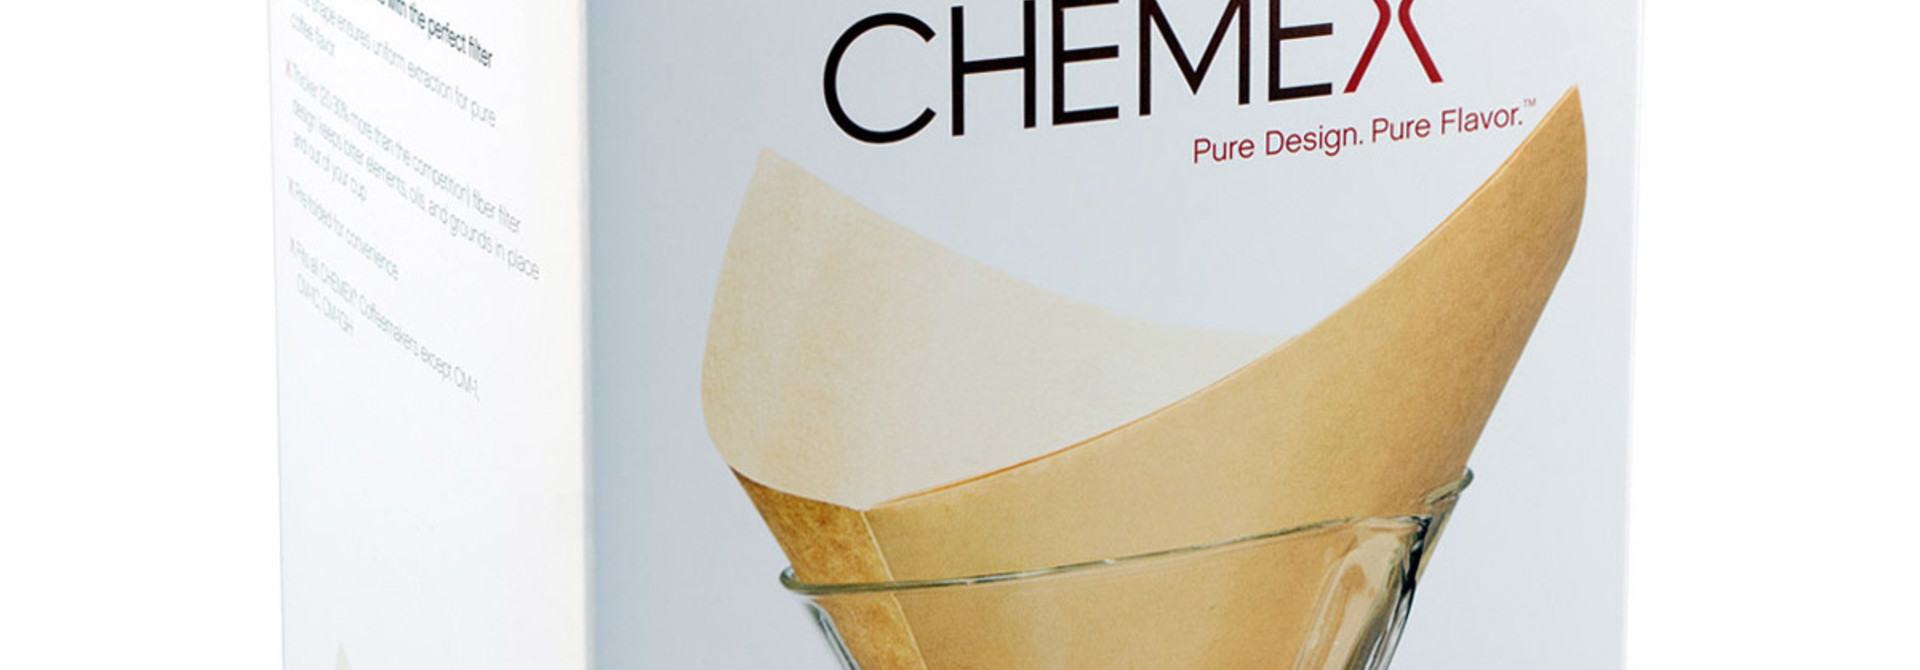 Chemex Filters Natural Squares (6-8 cups)